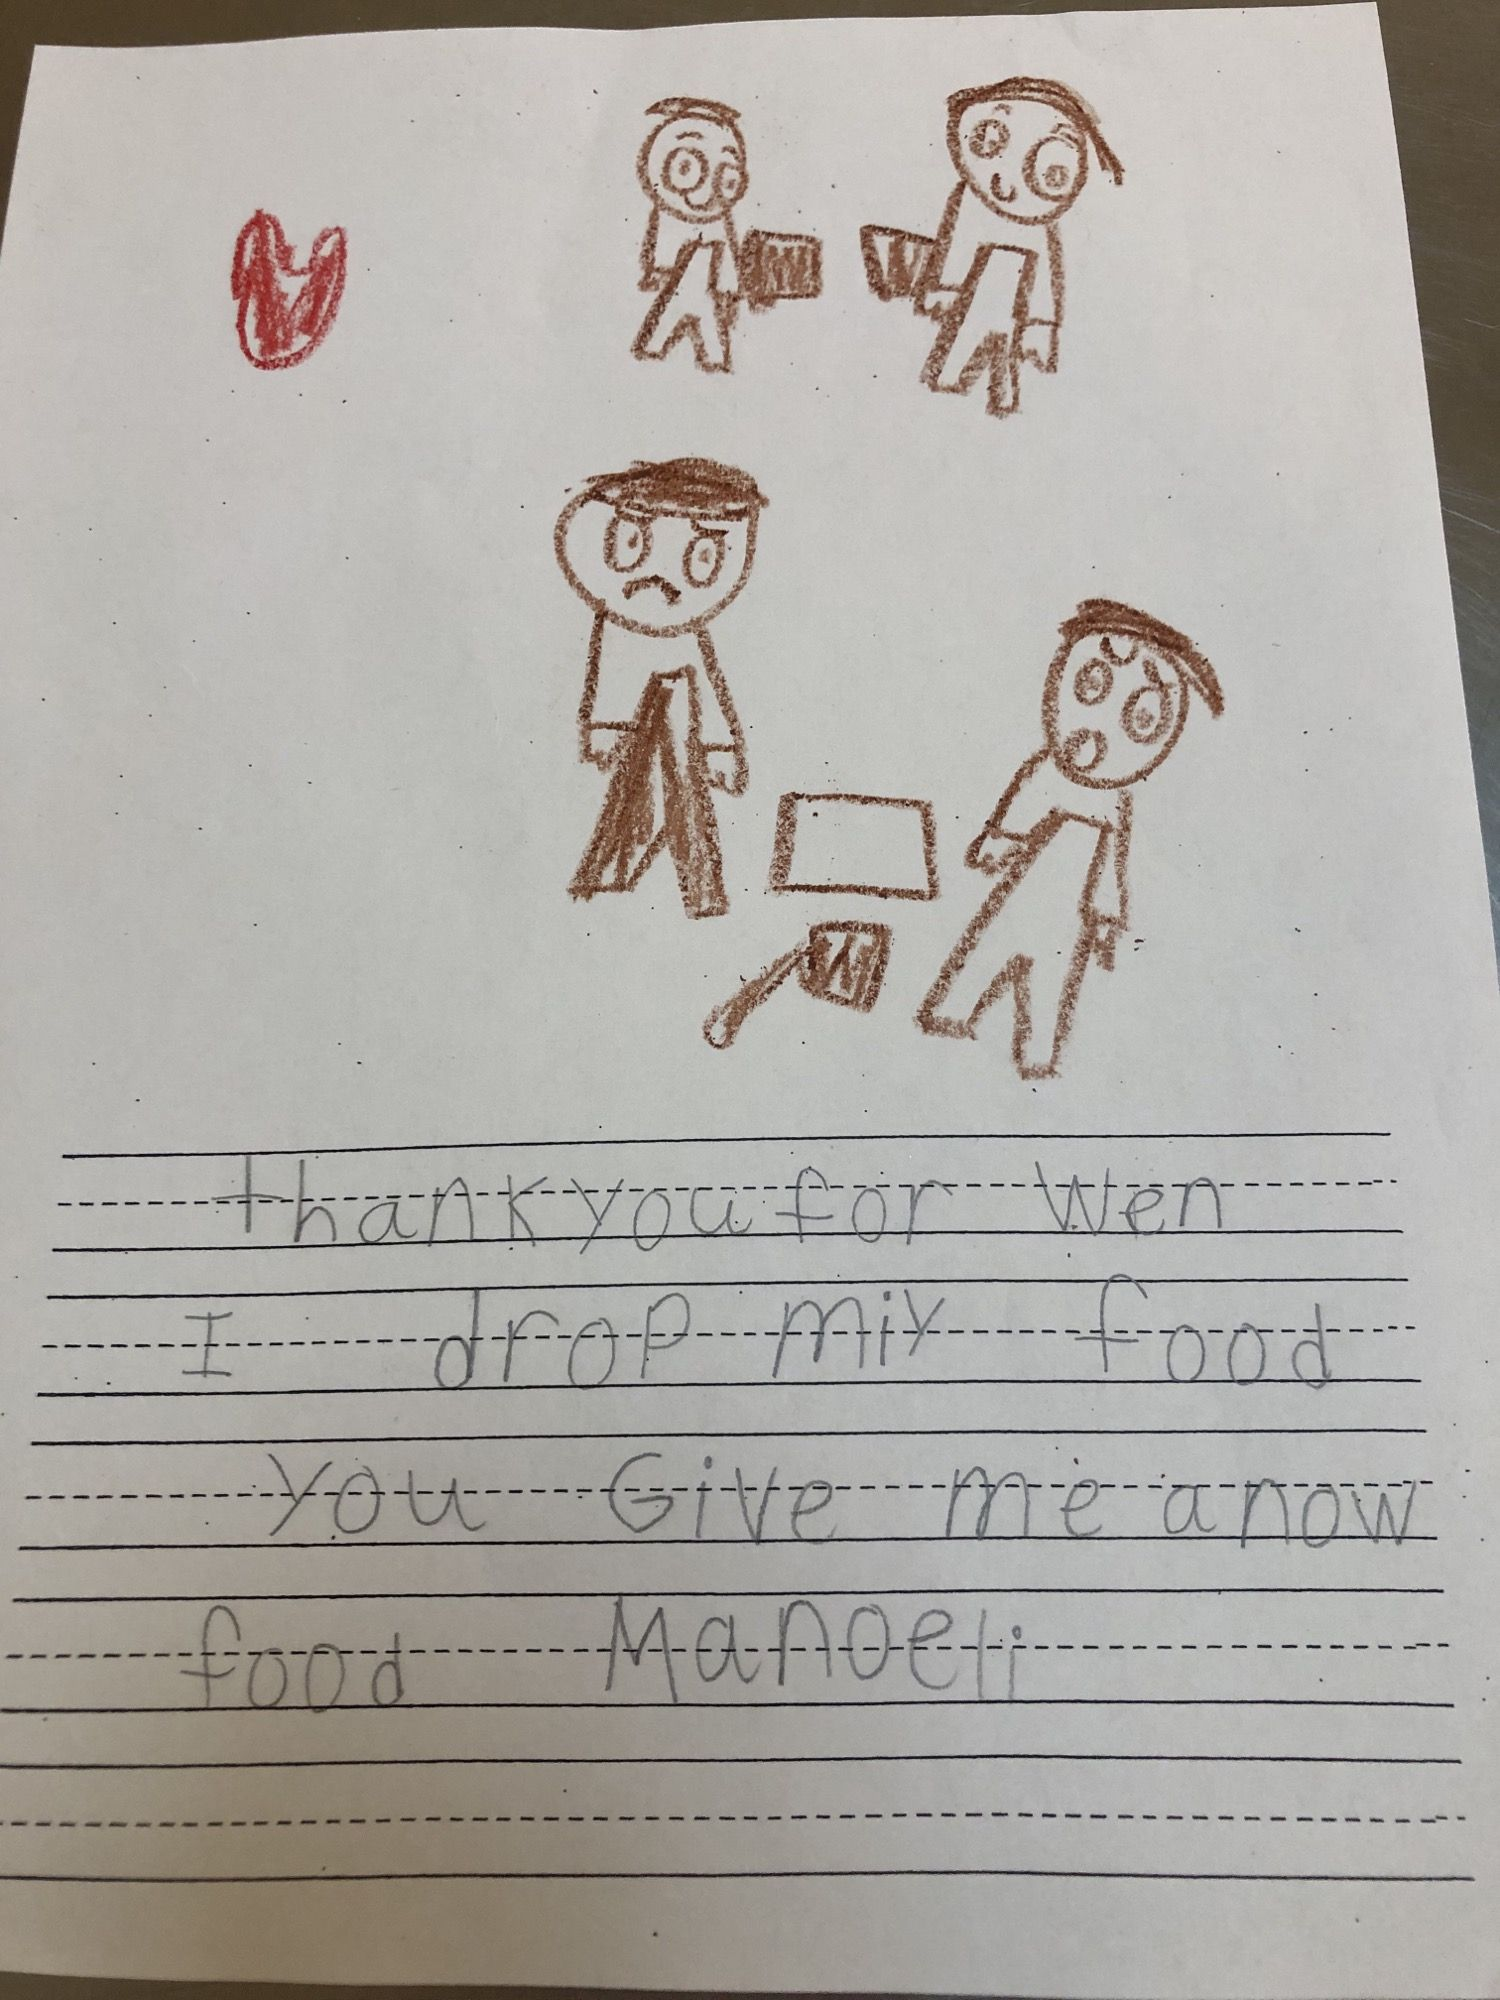 I'm a lunch lady. Today the first graders gave us some letters to thank us for serving them food. This one was my favorite.